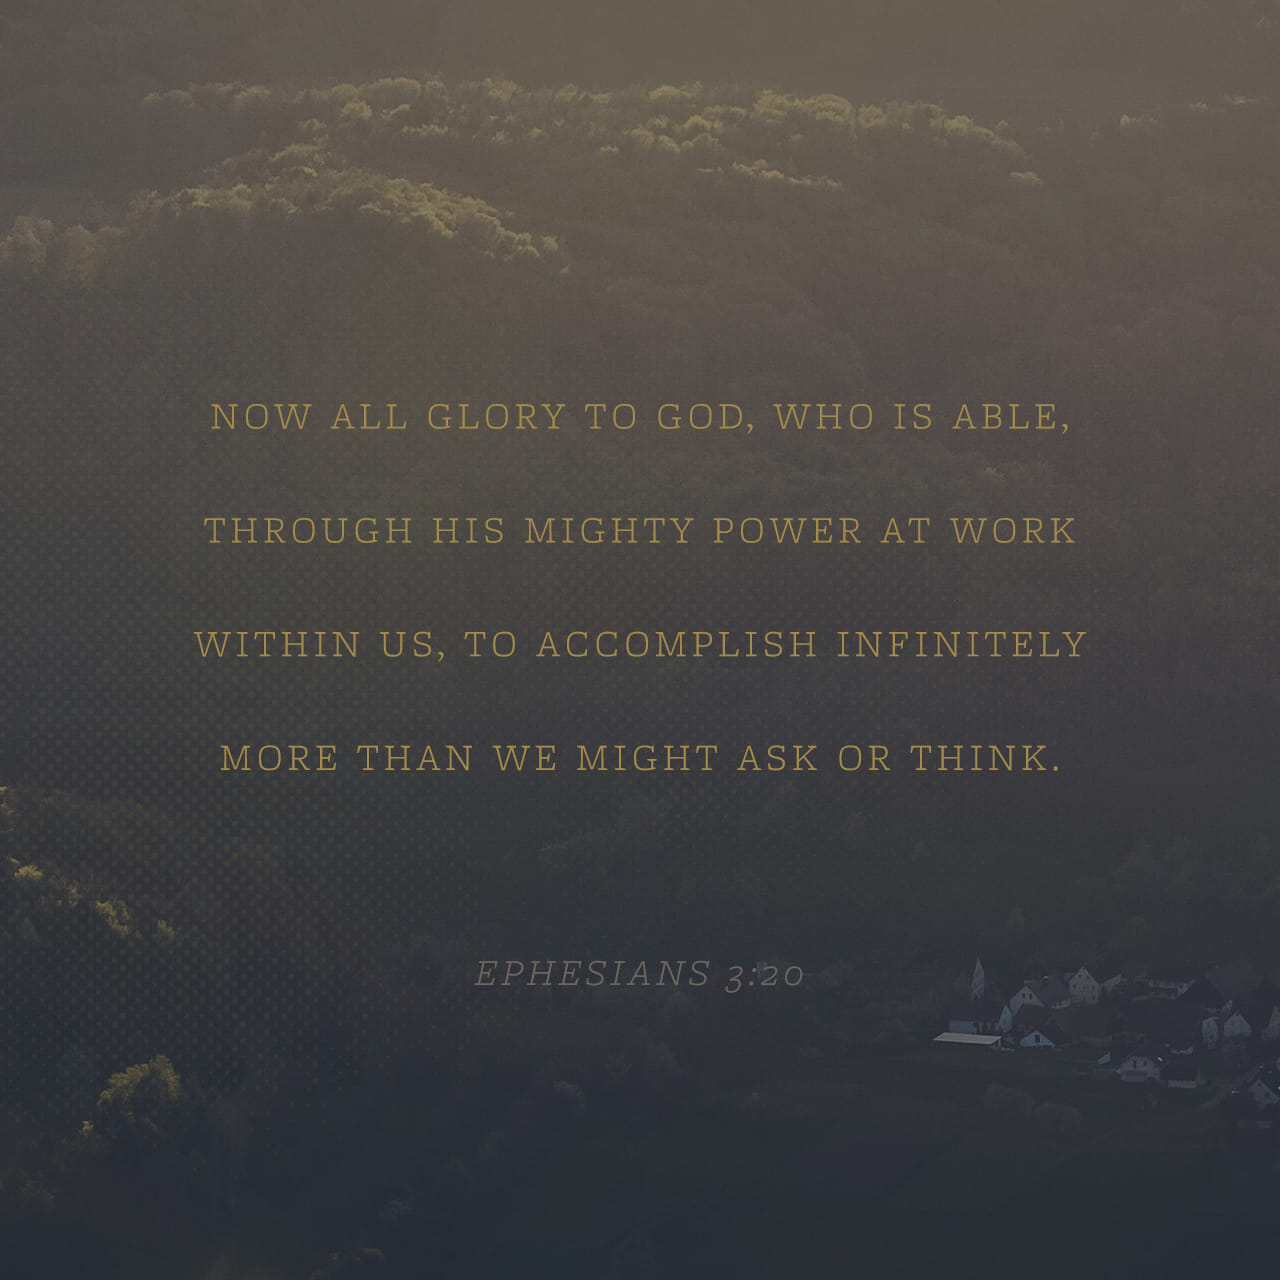 Ephesians 3:20-21 Now unto him that is able to do exceeding abundantly above all that we ask or think, according to the power that worketh in us, Unto him be glory in the church by Christ Jesus throughout all ages, wor | King James Version (KJV)